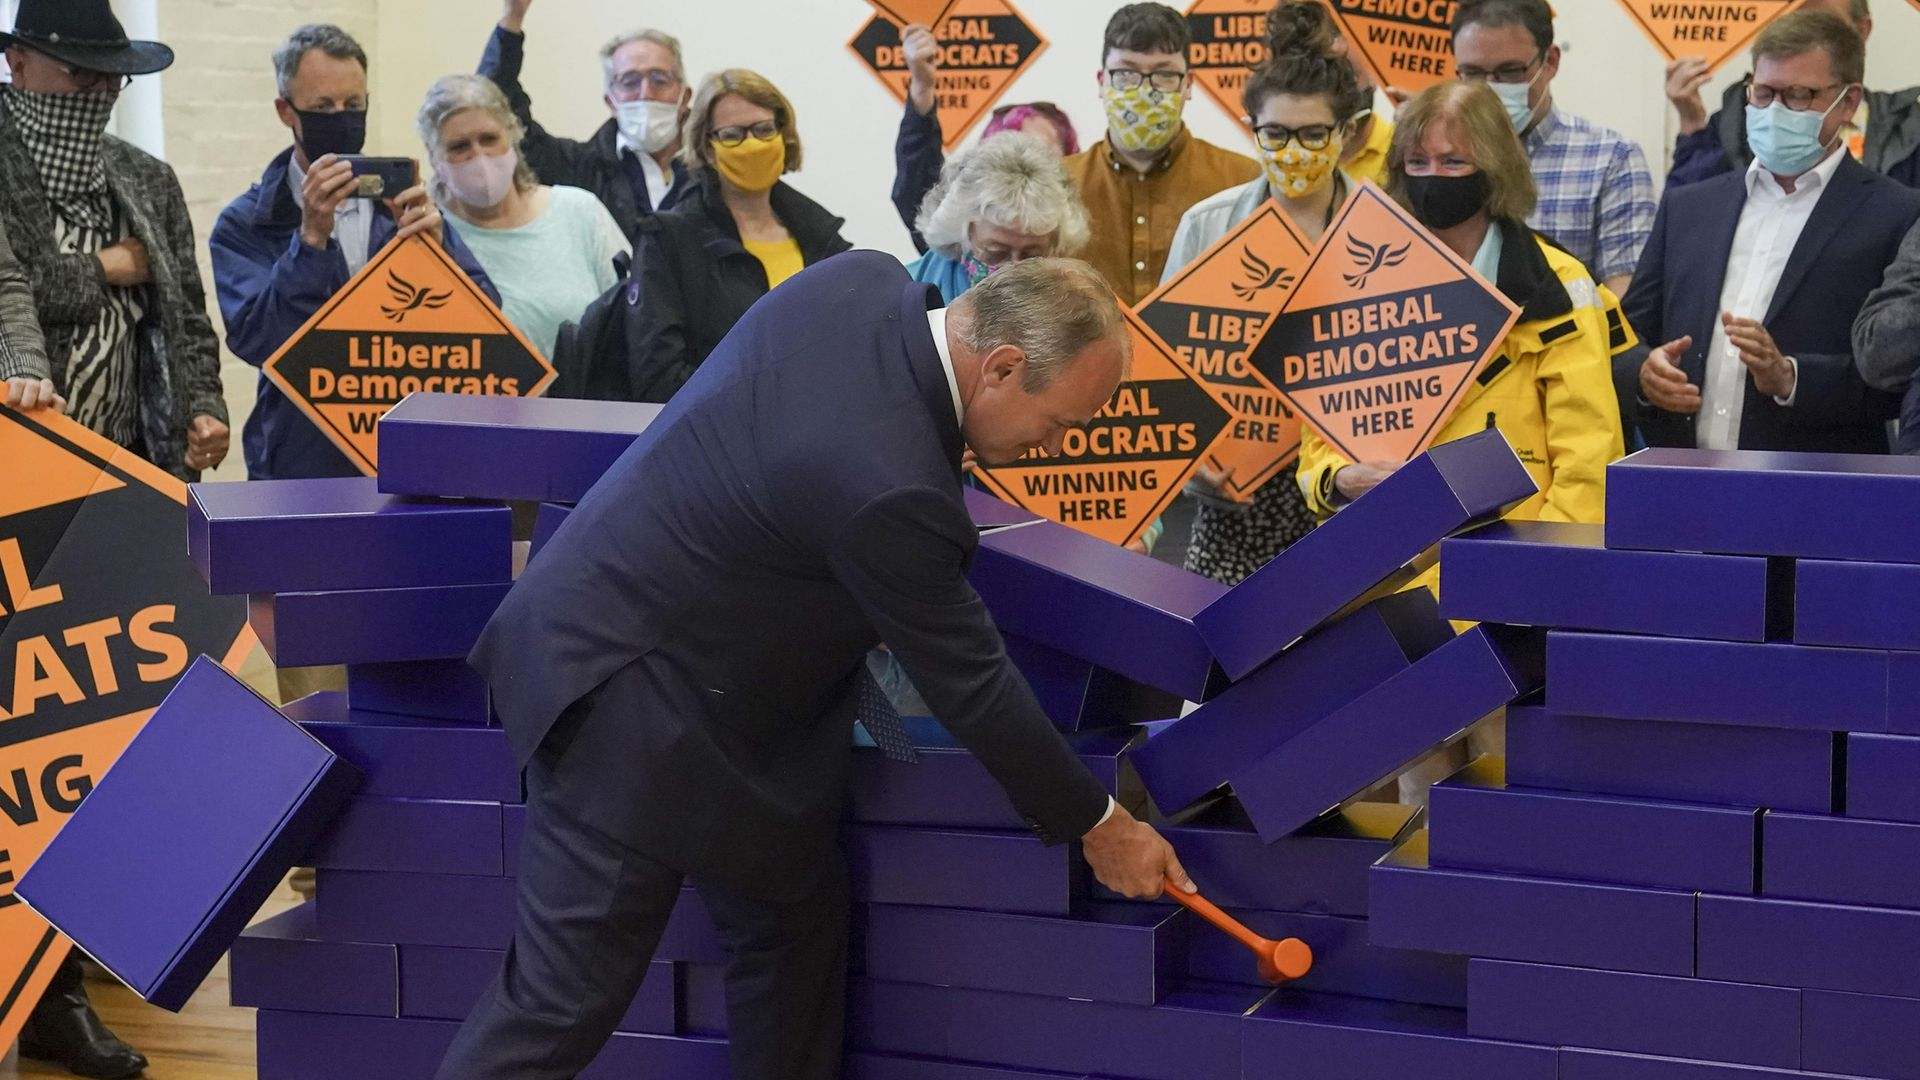 Liberal Democrat leader Ed Davey during a victory rally at Chesham Youth Centre in Chesham, Buckinghamshire, after Sarah Green won the Chesham and Amersham by-election - Credit: PA